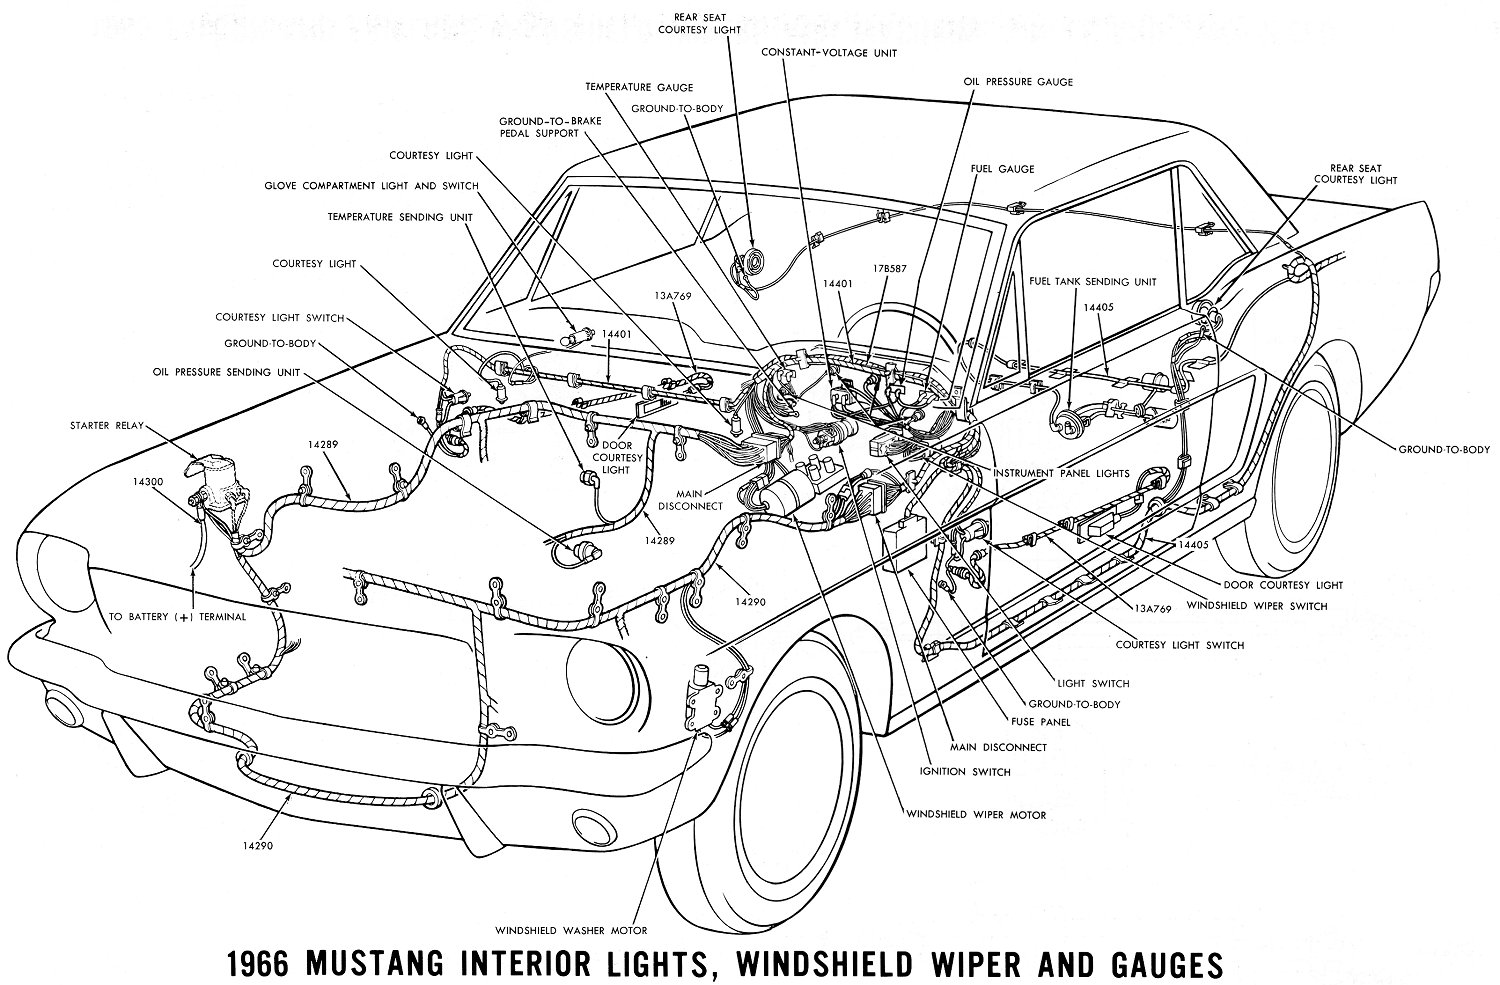 mustang wiring diagrams average joe restoration 1966 mustang interior lights windshield wiper and gauges acircmiddot schematic